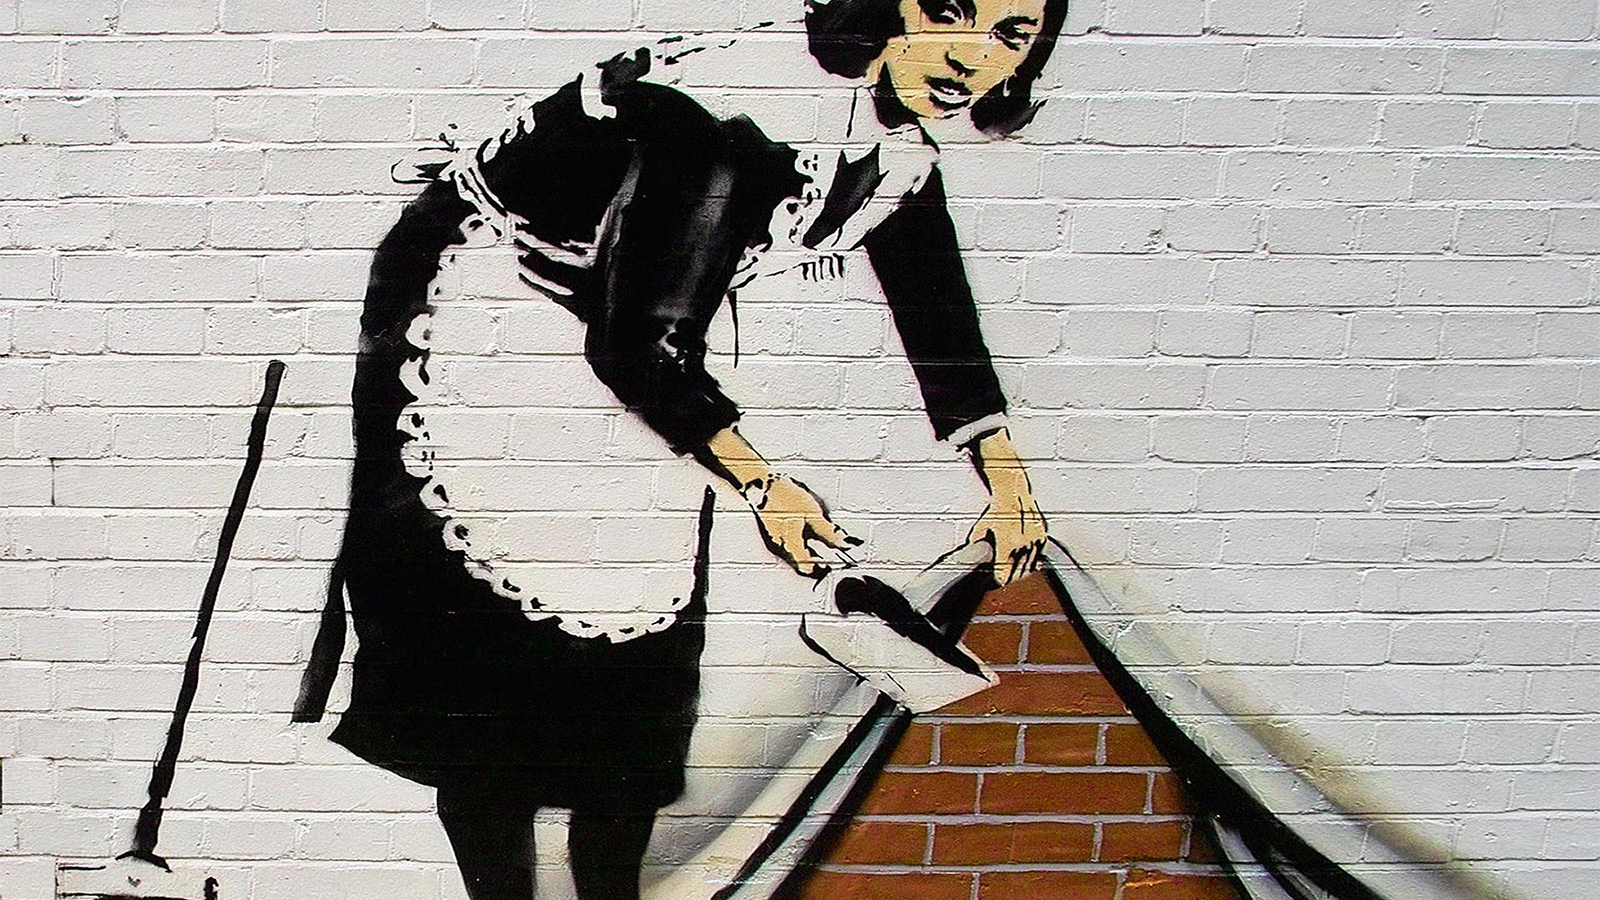 Free download Discourse Banksy 1600x1200 for your ...